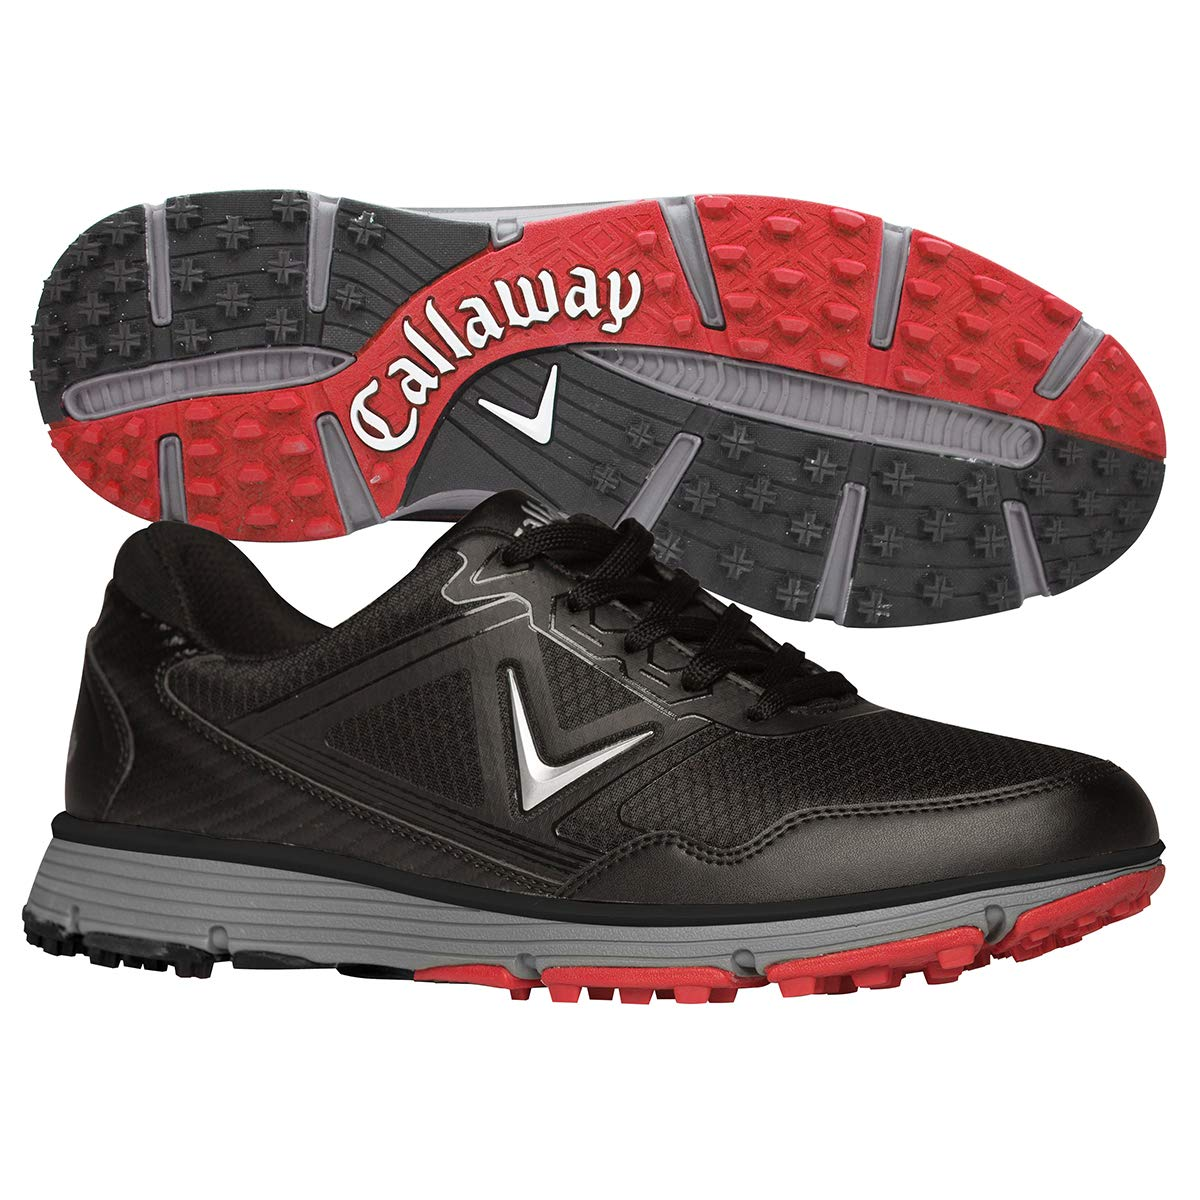 Callaway Men's Balboa Vent Golf Shoe, Black/Grey, 9 D US